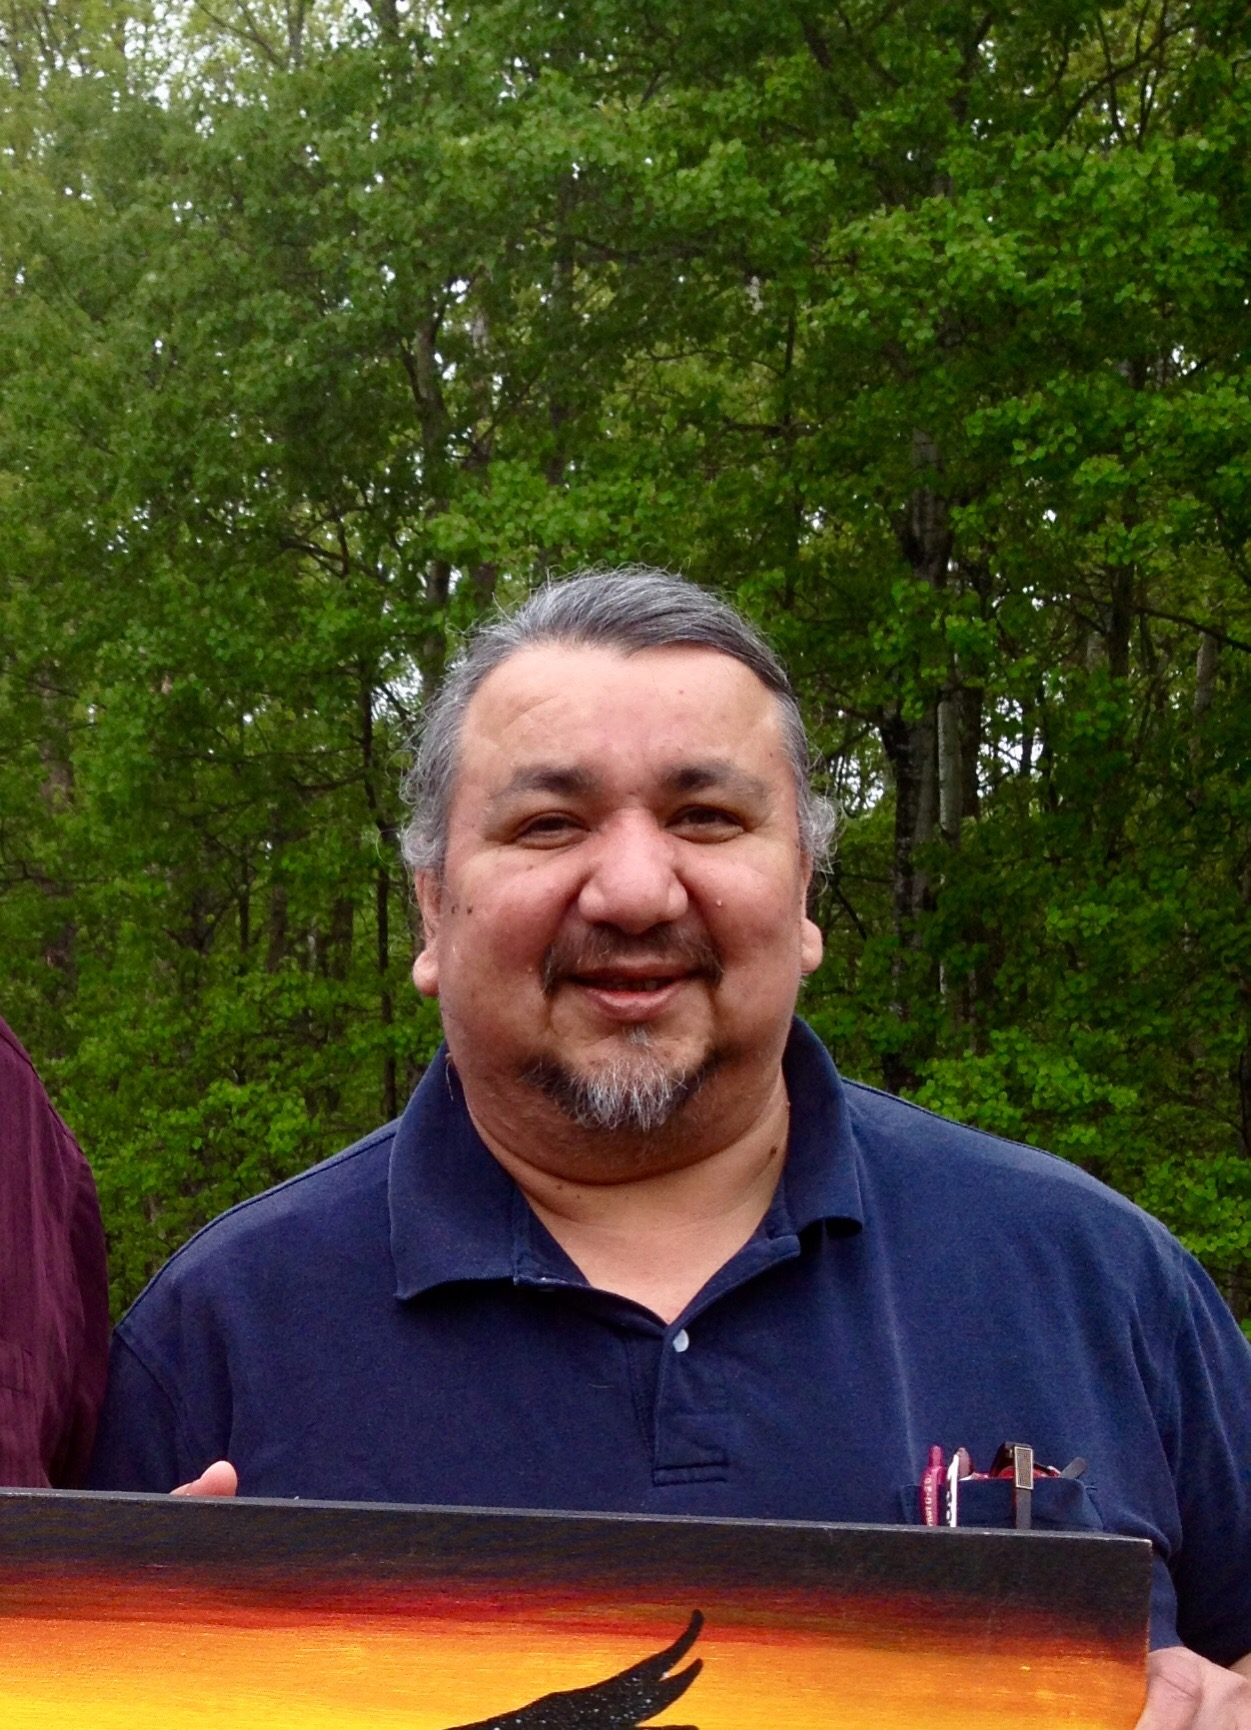 DALE GREENE - Bedonahkwaad (Dale Greene) works with the Leech Lake Band of Ojibwe in a number of different areas, including 1855 Treaty Authority, Secretary-Treasury Office, Legal Office, Domestic Abuse Re-Education, Child Welfare, and Bamenim Anishinaabeg' Juvenile Justice Re-Entry. He has previously worked in K-12 education administration and served in the US Navy. He maintains an active presence in the community through cultural teaching, drumming, and education about treaties and federal Indian laws and policies.